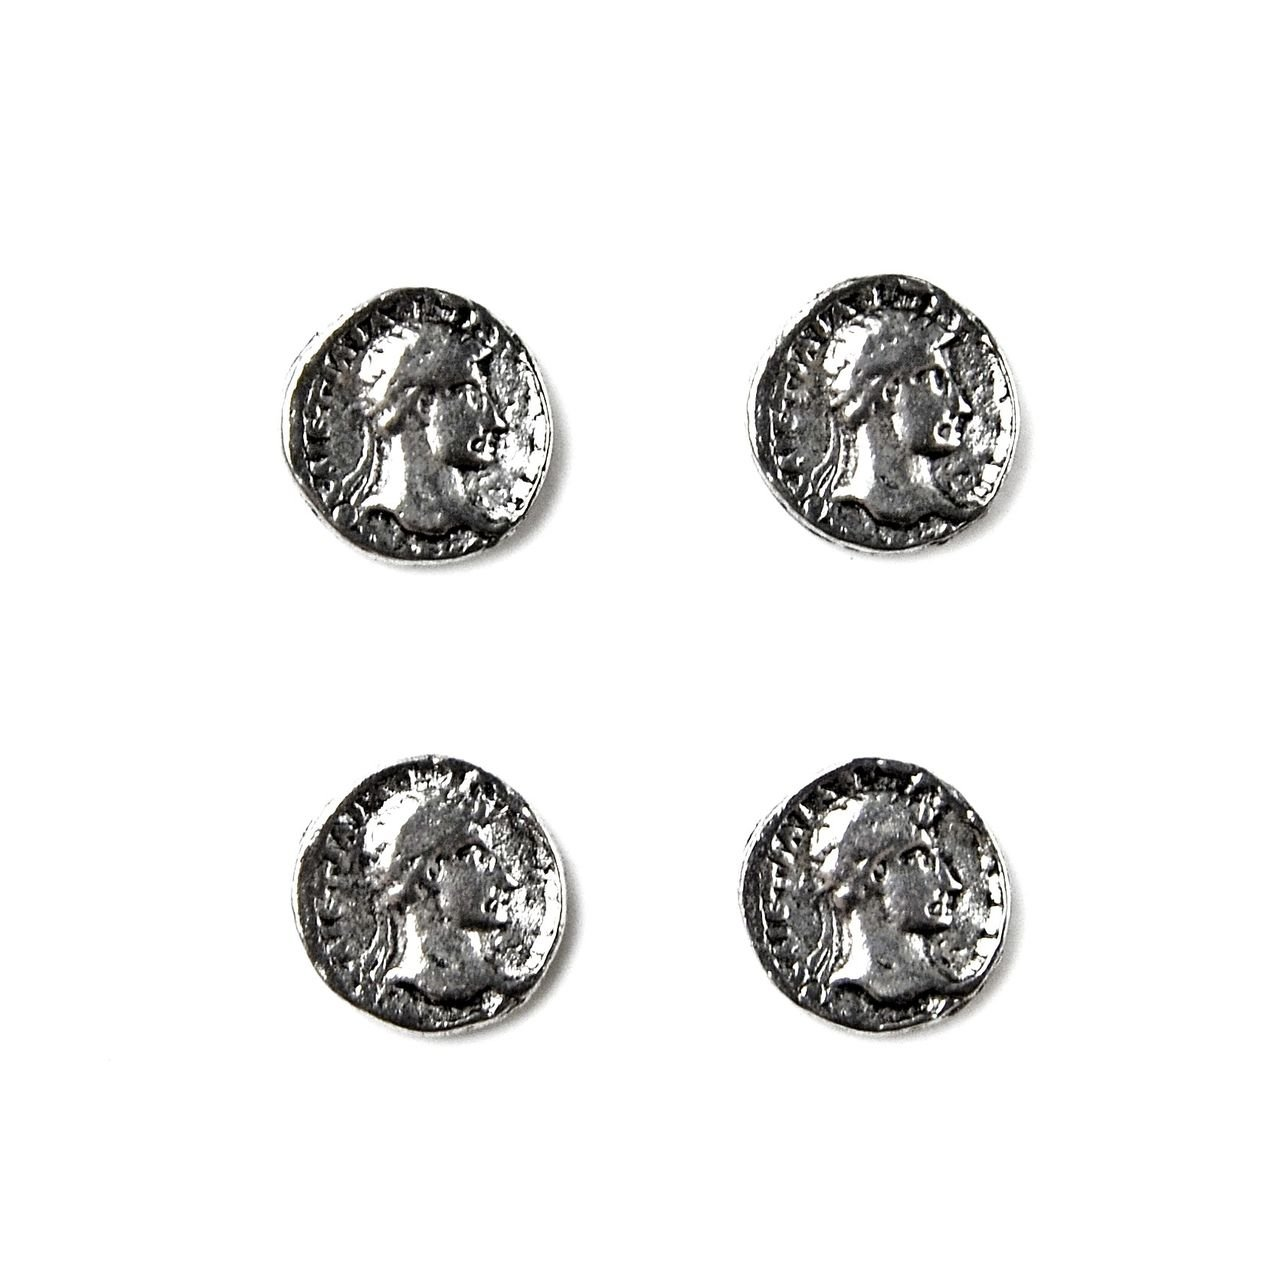 Quality Handcrafts Guaranteed Roman Coin Tuxedo Studs